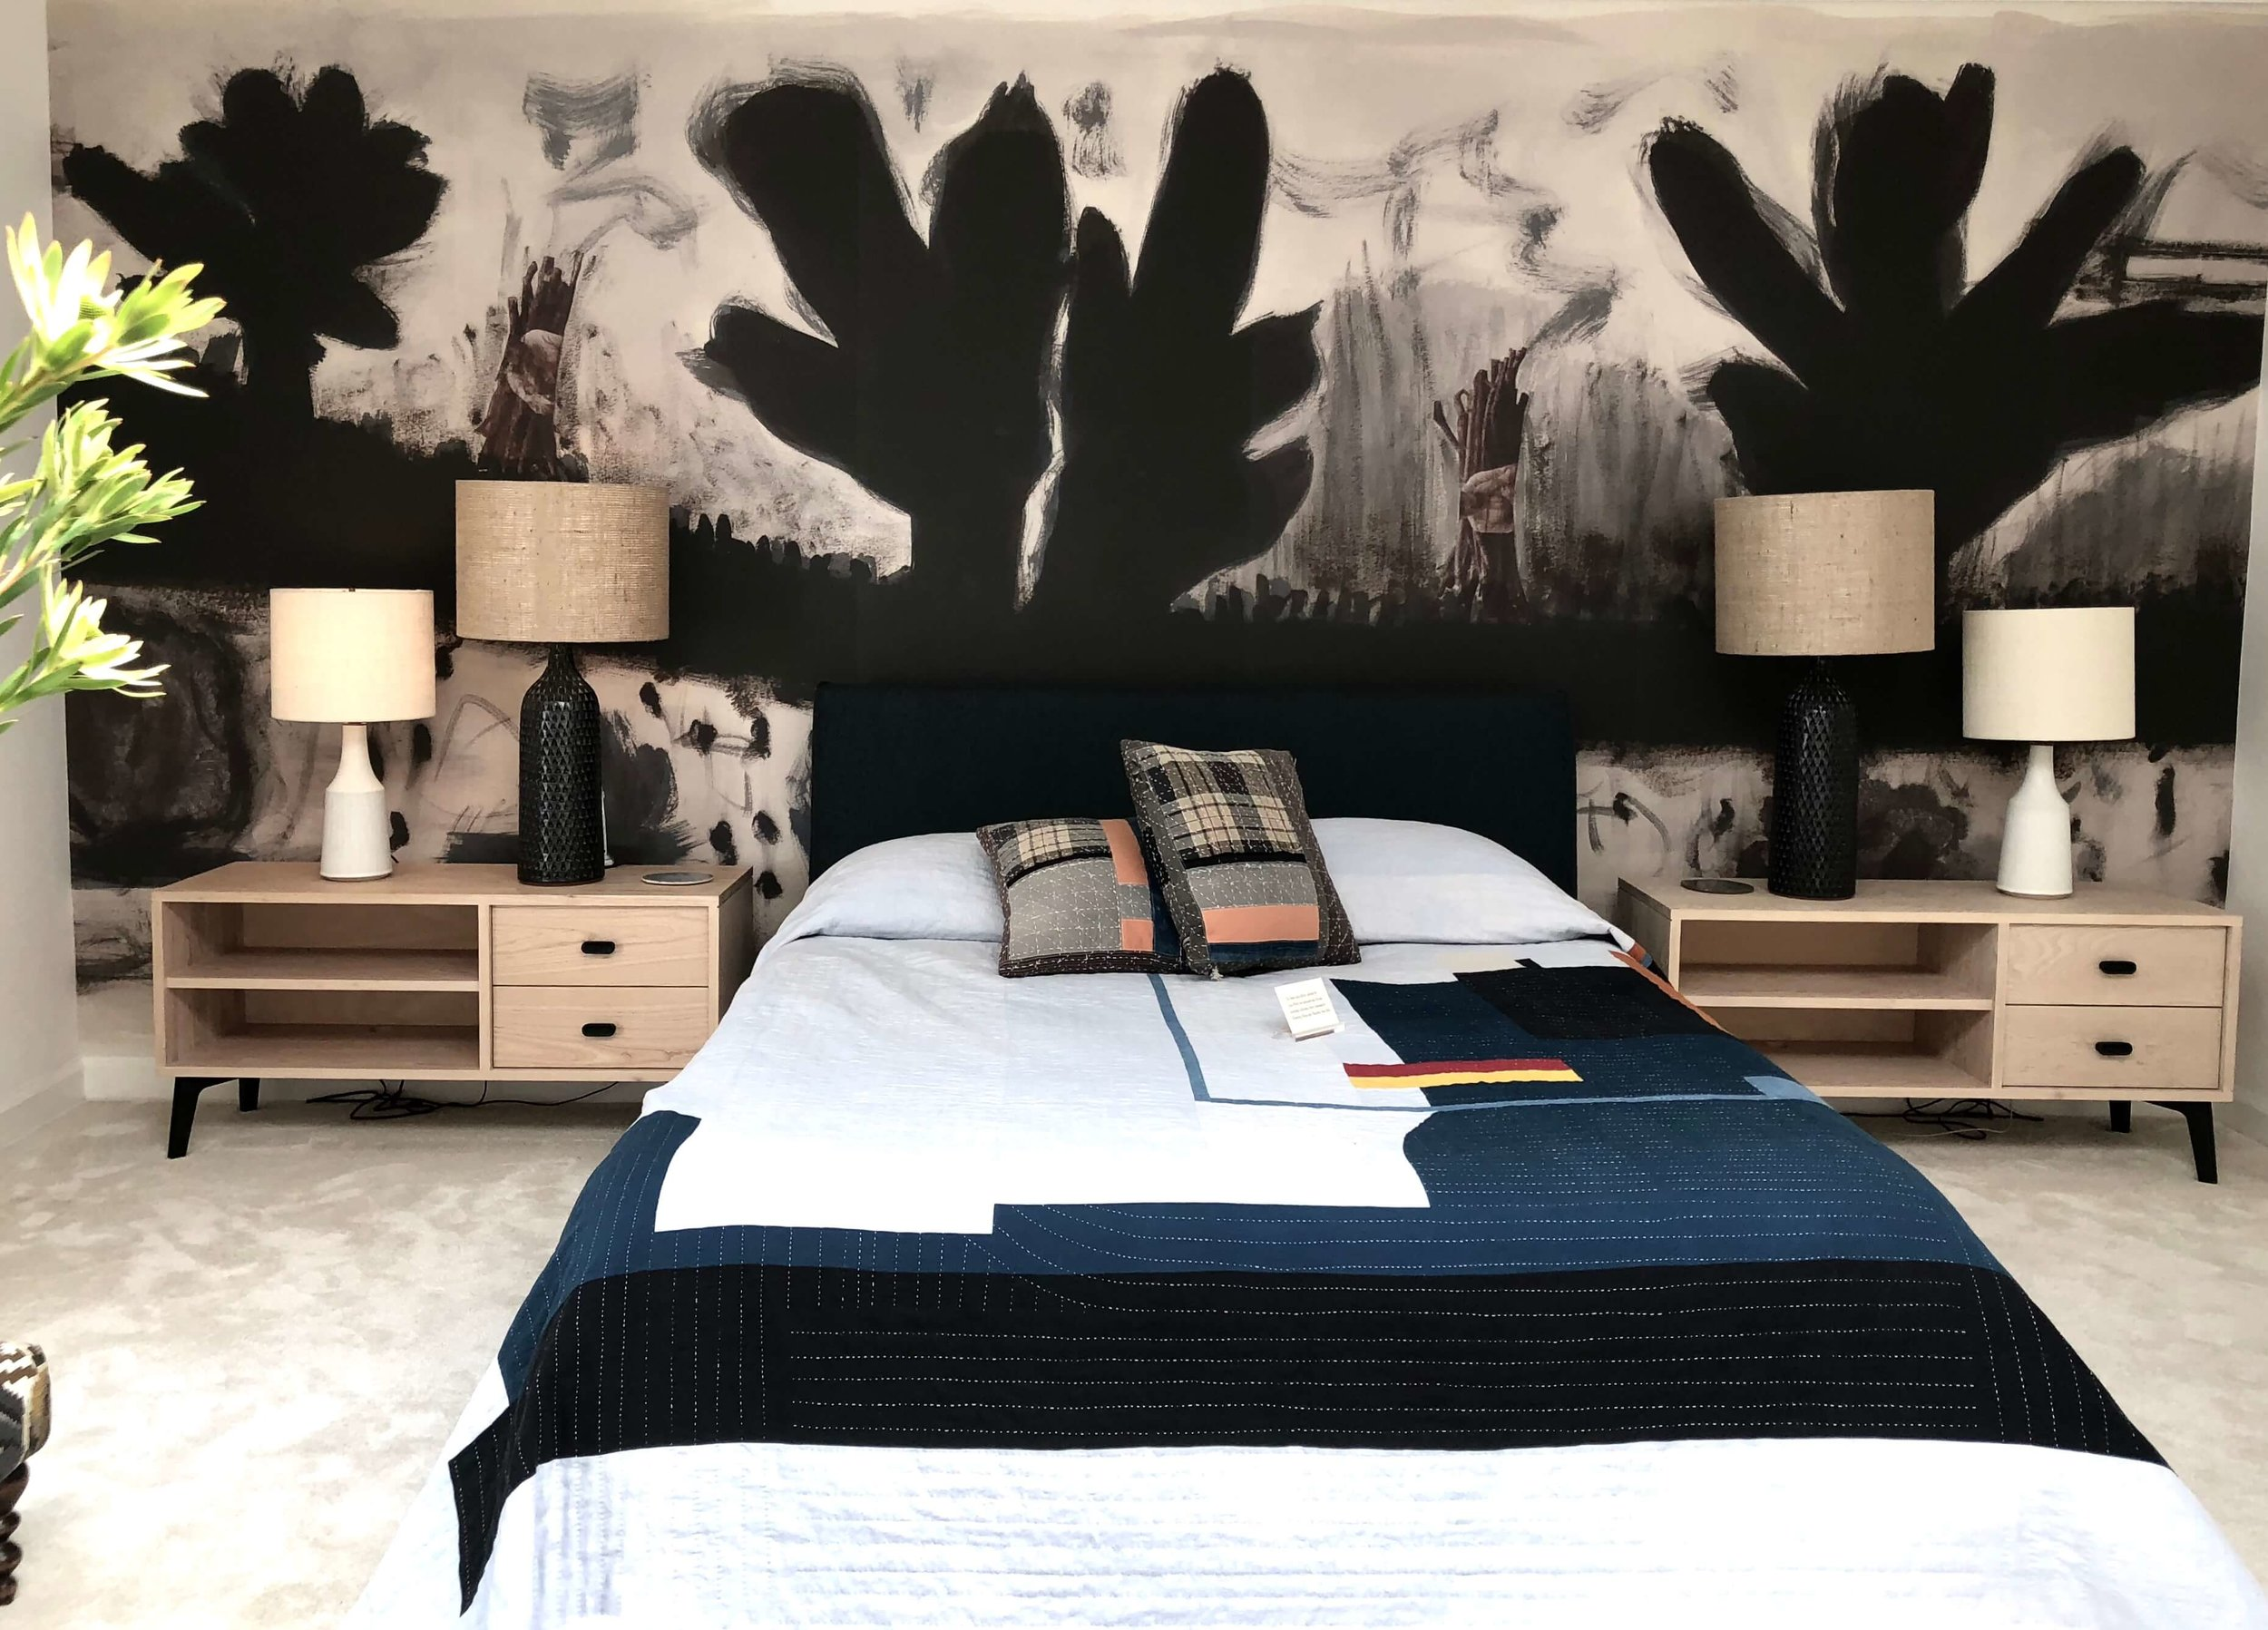 mid century modern design bedroom with graphic accent wall mural